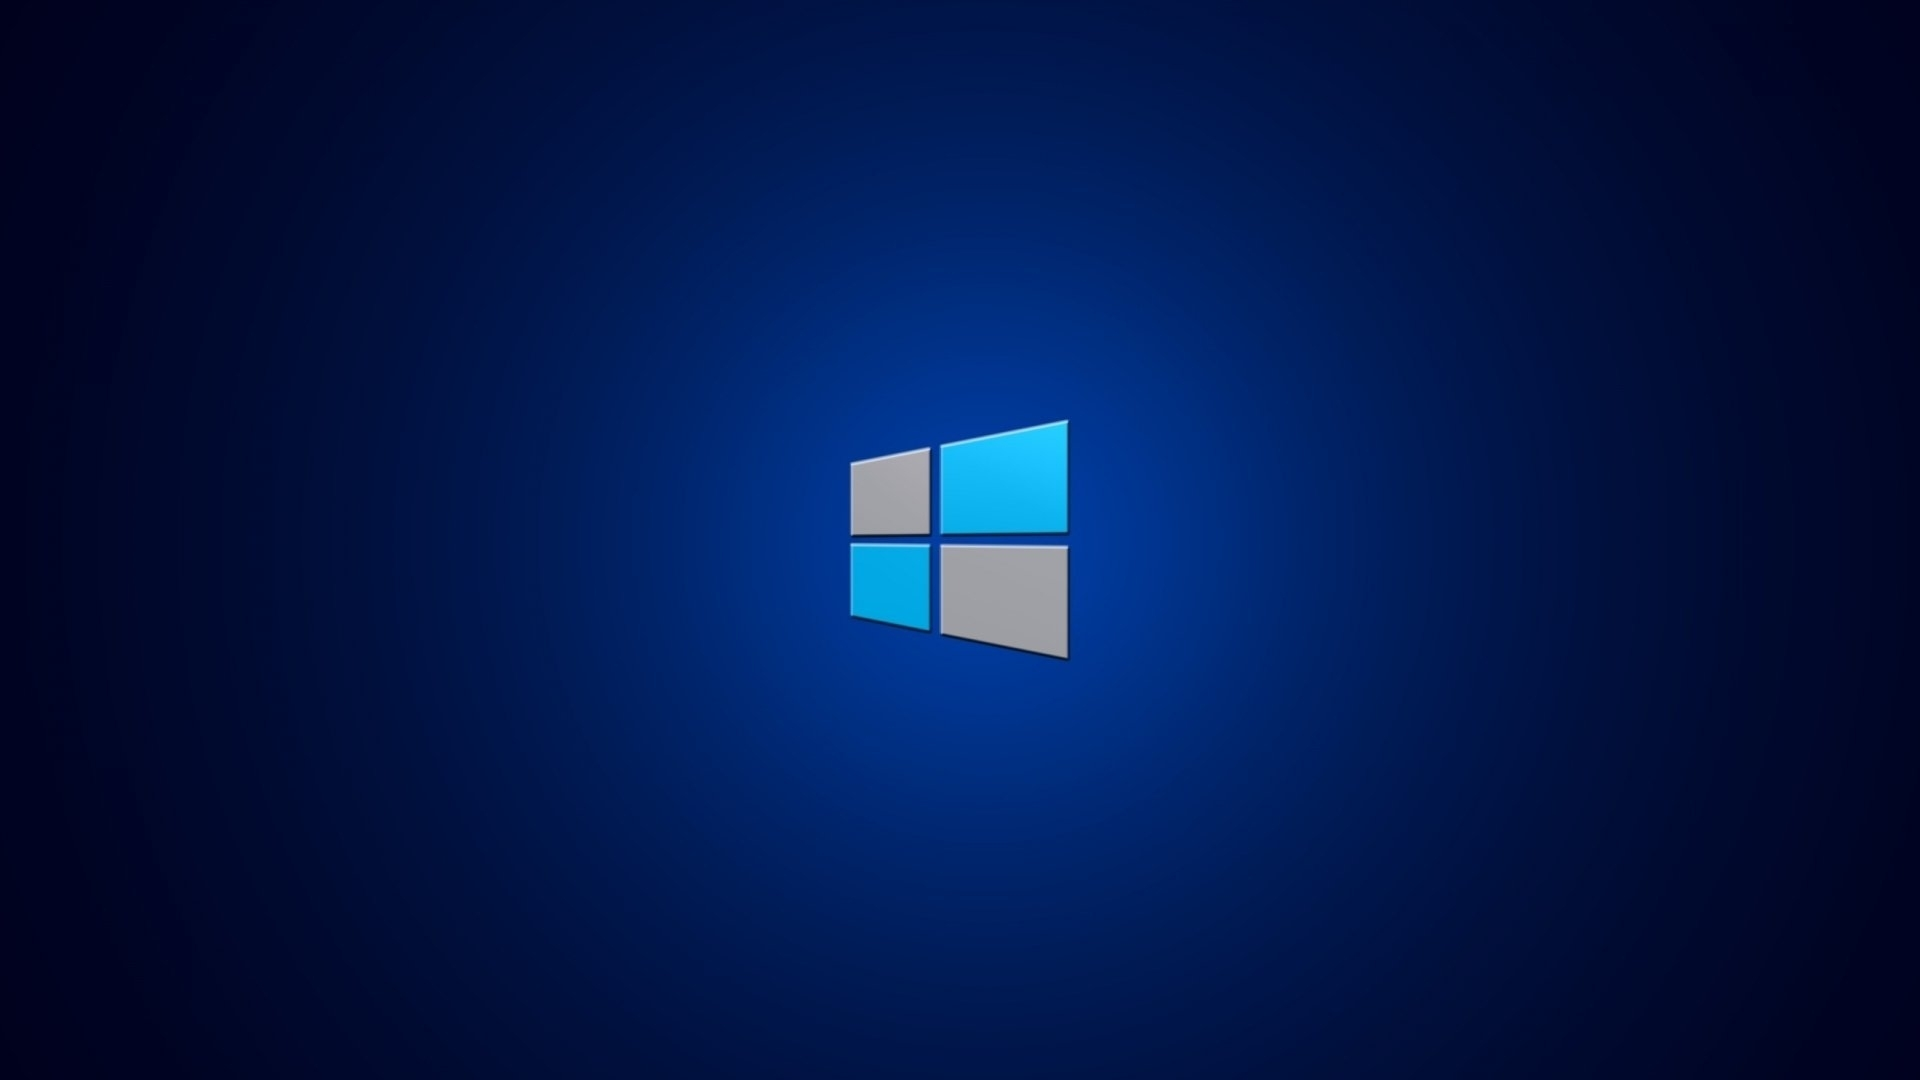 166 windows 8 hd wallpapers | background images - wallpaper abyss